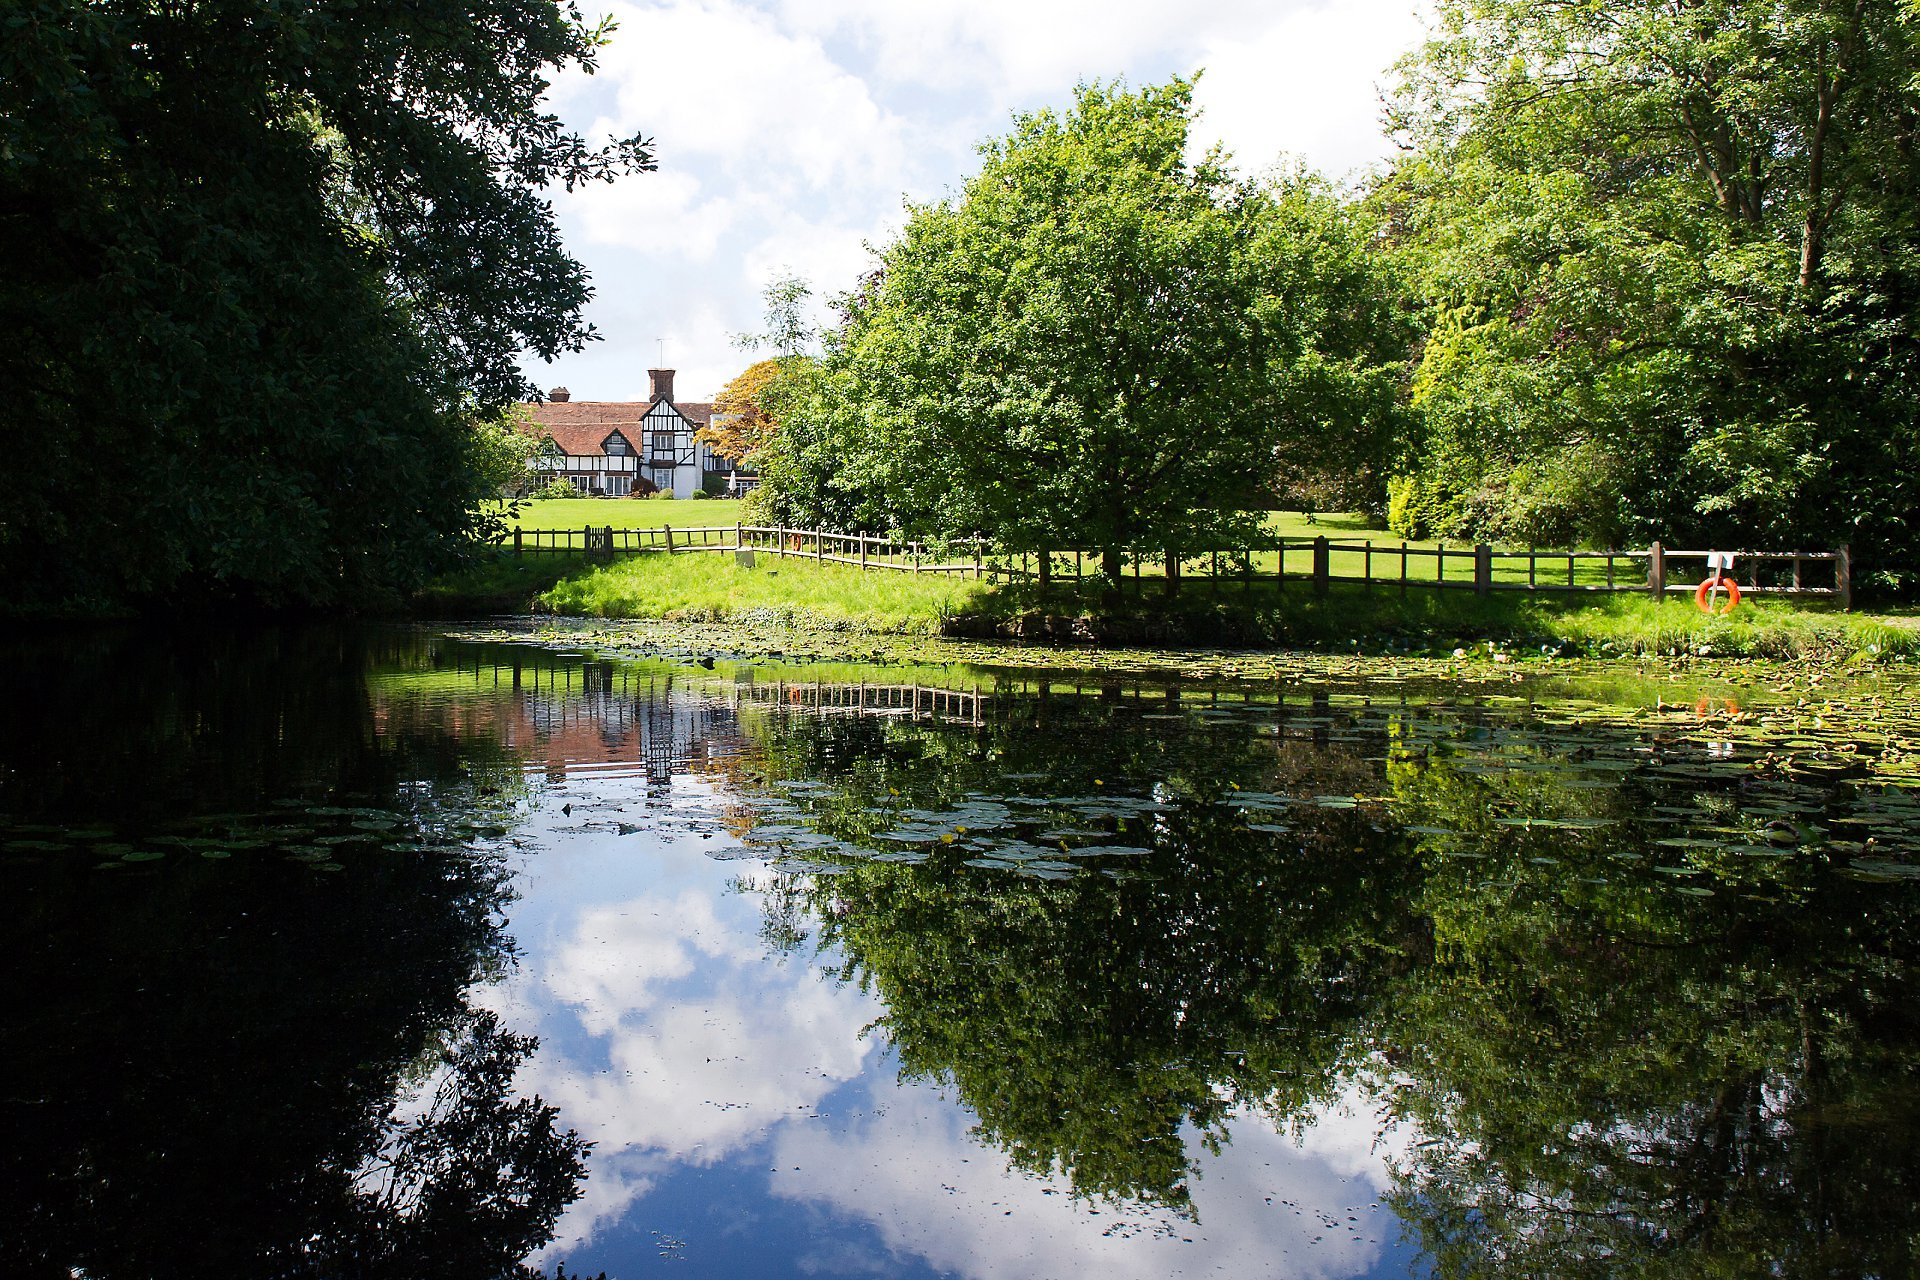 Ghyll Manor Horsham is a country house wedding venue will a large lawn, gardens and pretty pond